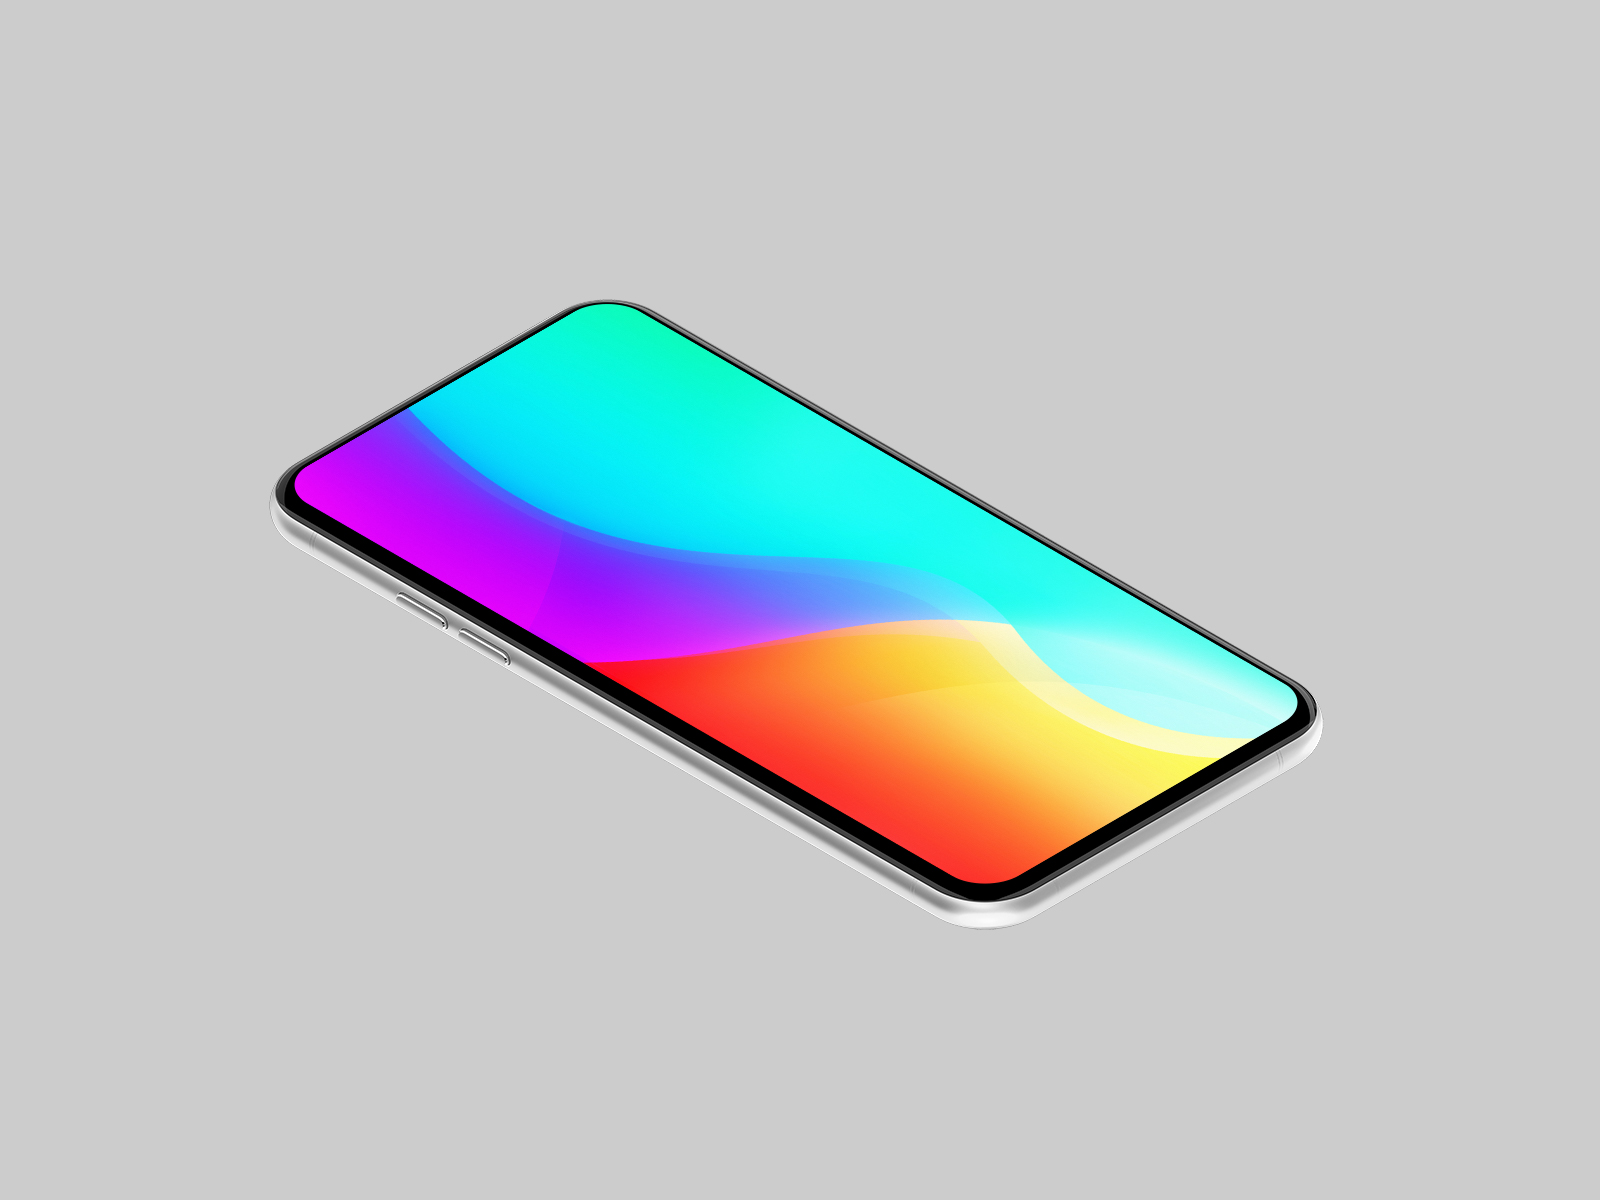 Generic Mobile Mockup (10 Colors)